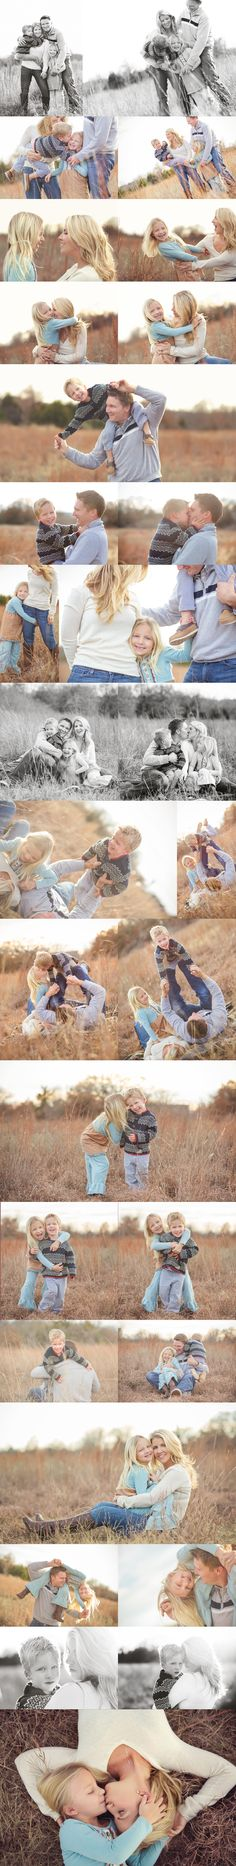 family shoot. love the soft tones